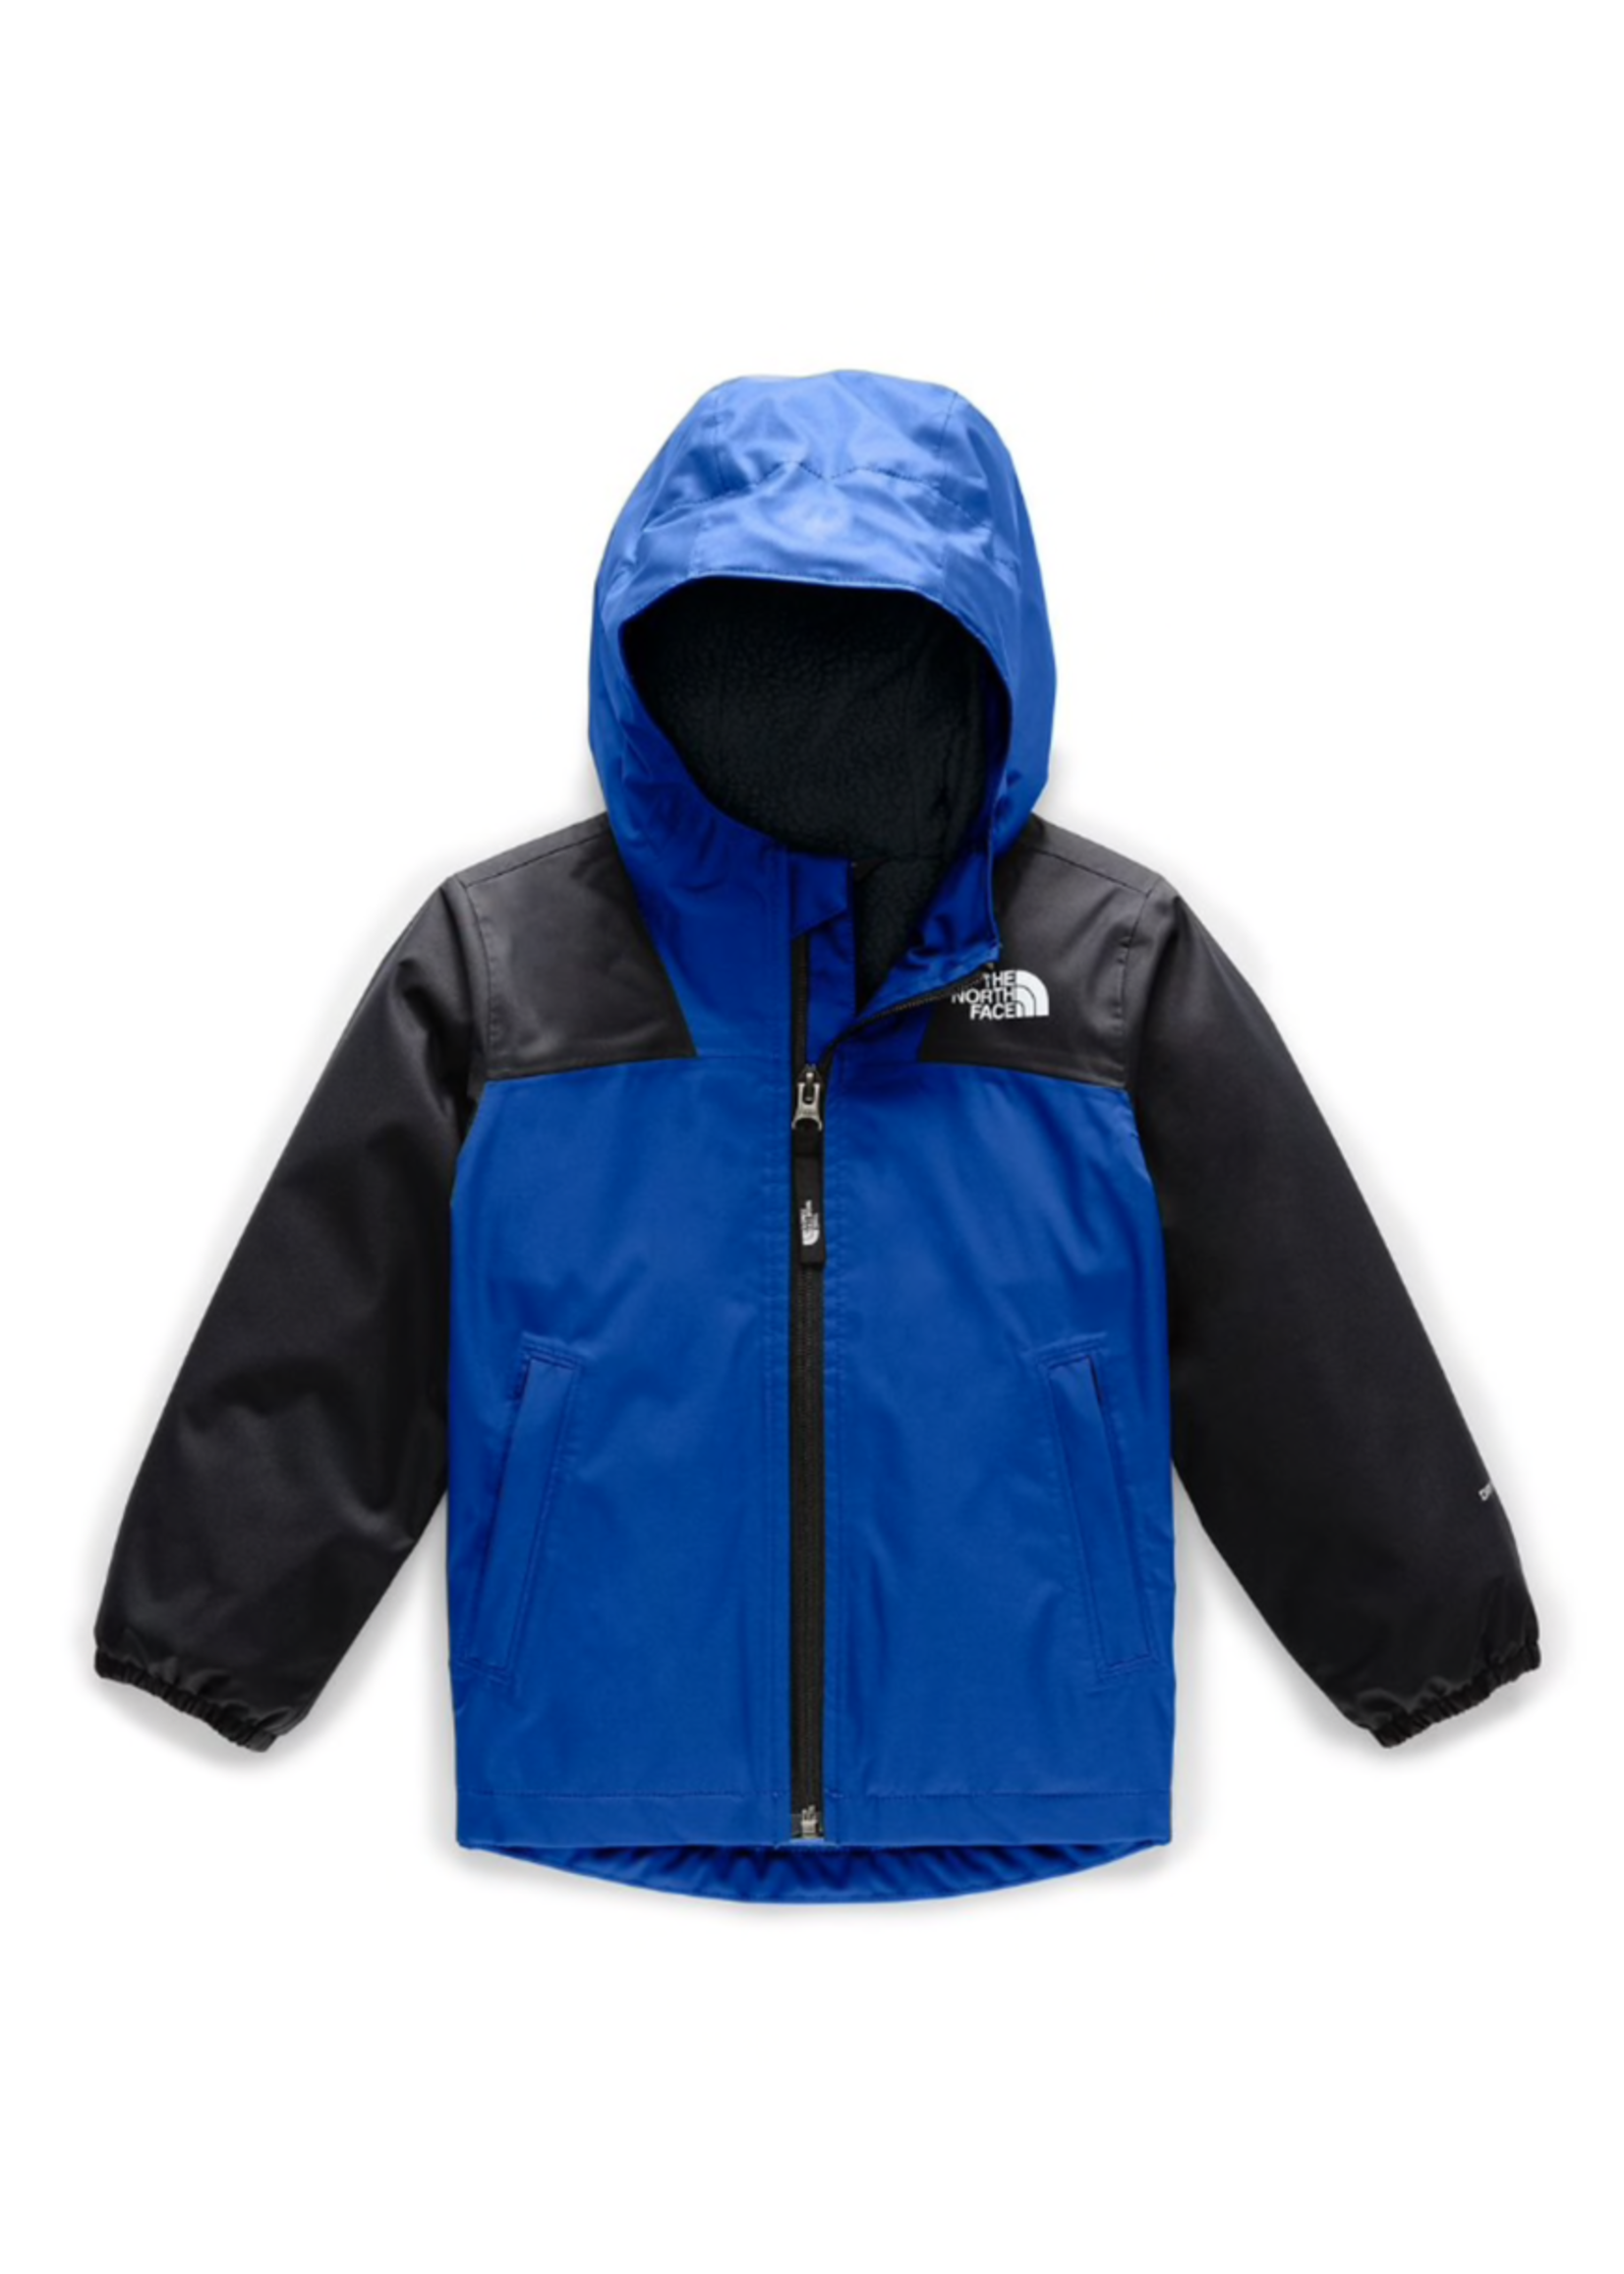 The North Face North Face, Boys' Toddler Warm Storm Jacket